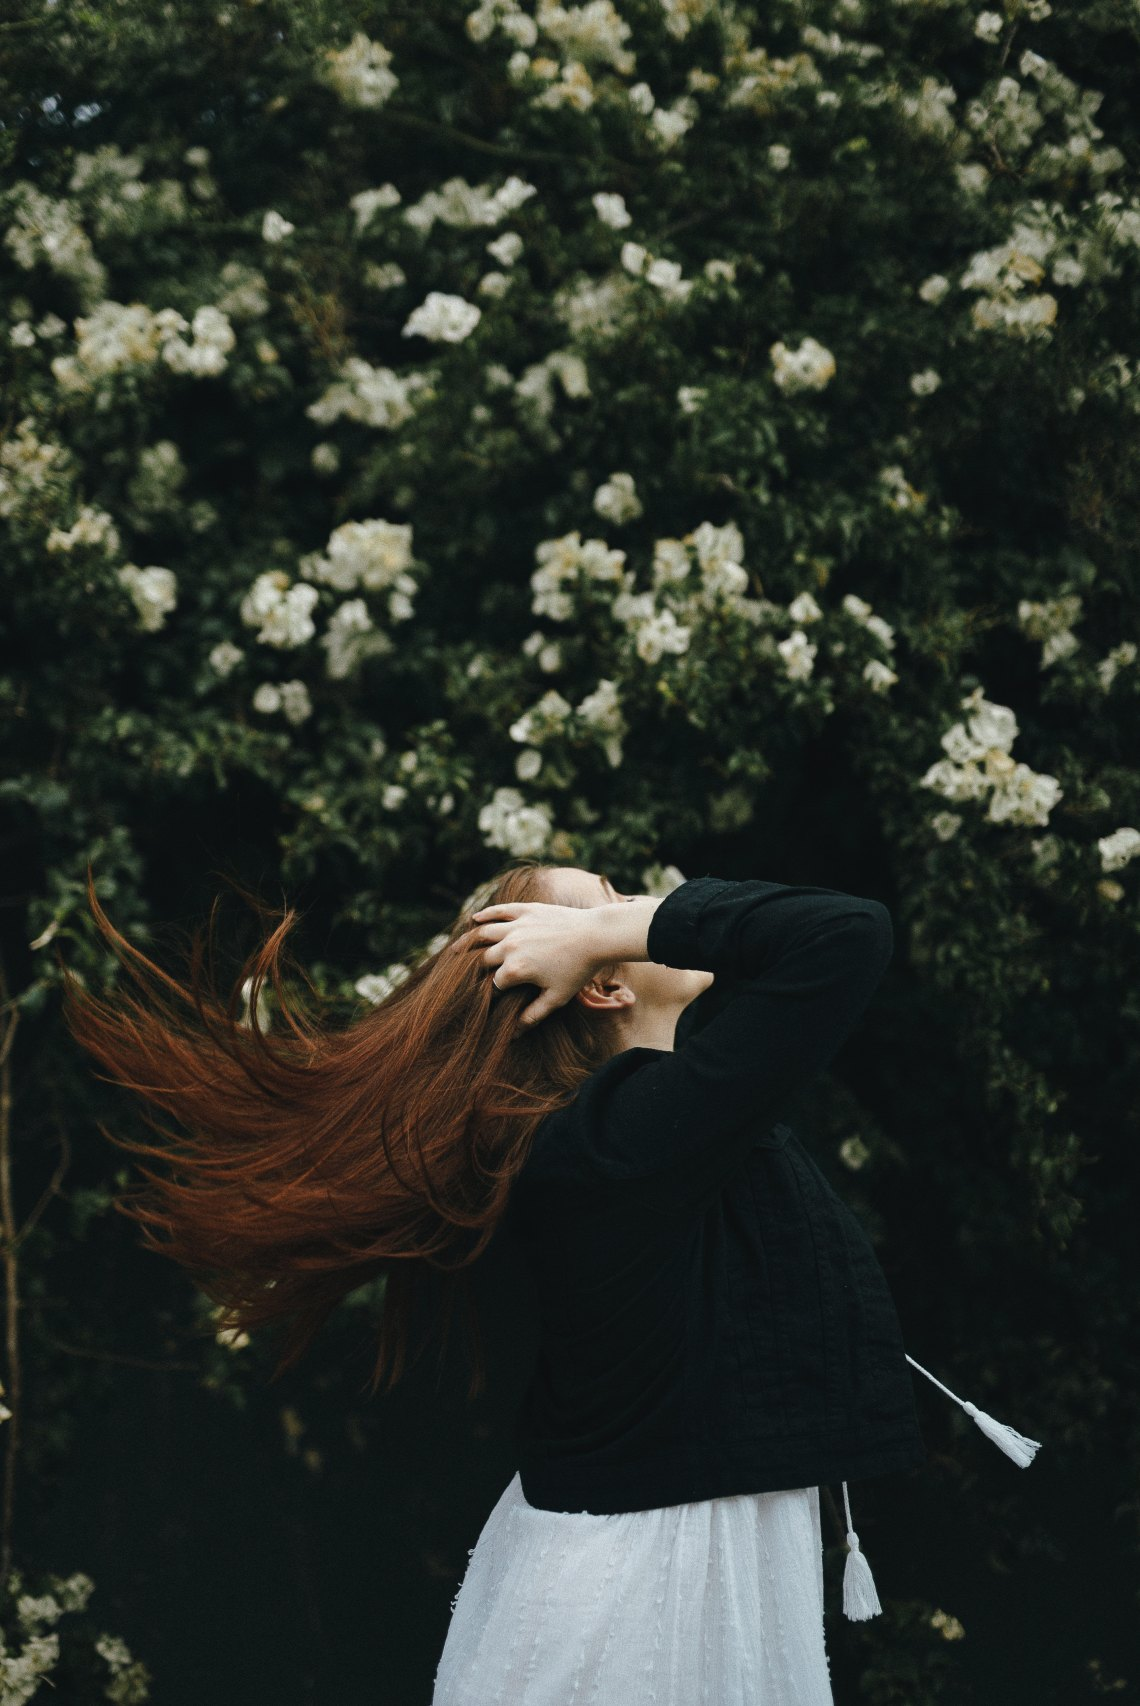 woman flipping hair by some flowers